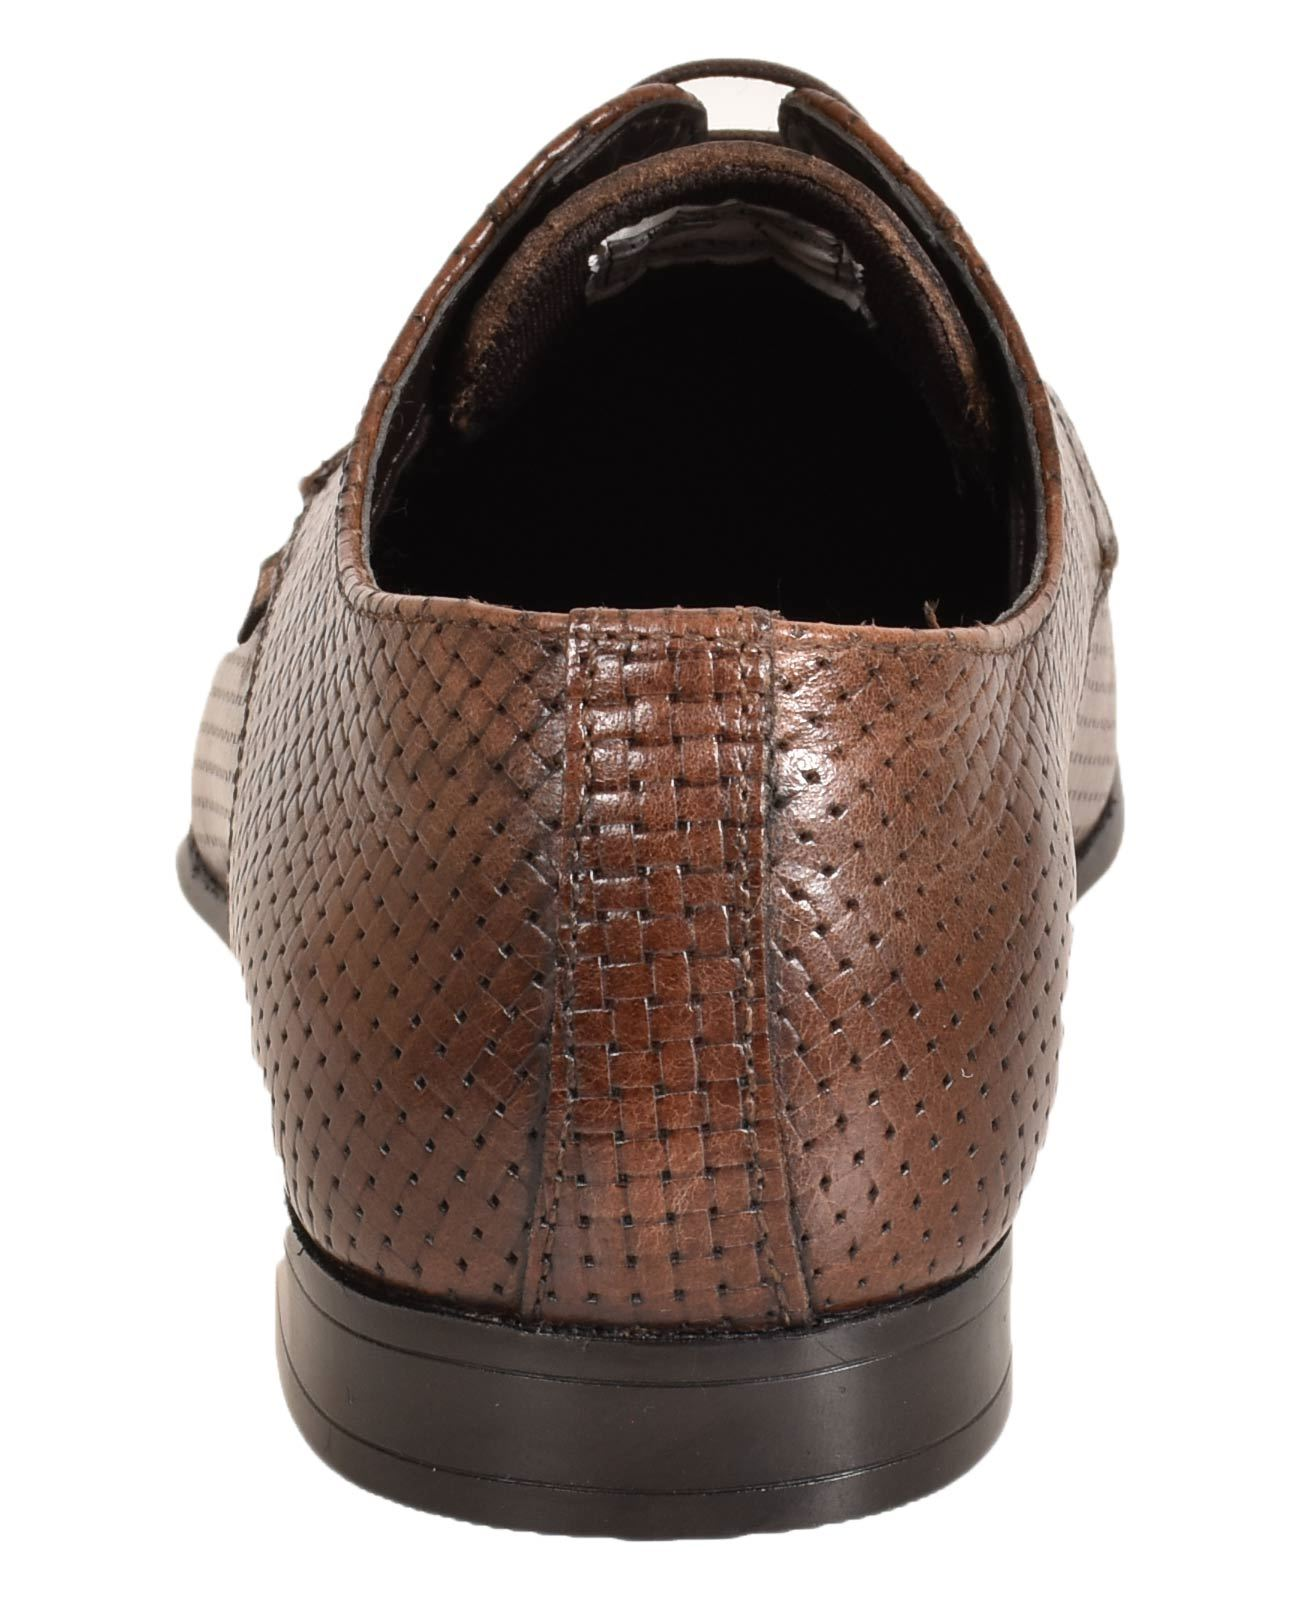 Mens-UK-Style-Leather-Lining-Formal-Office-Wedding-Smart-Work-Brogue-Shoes thumbnail 61